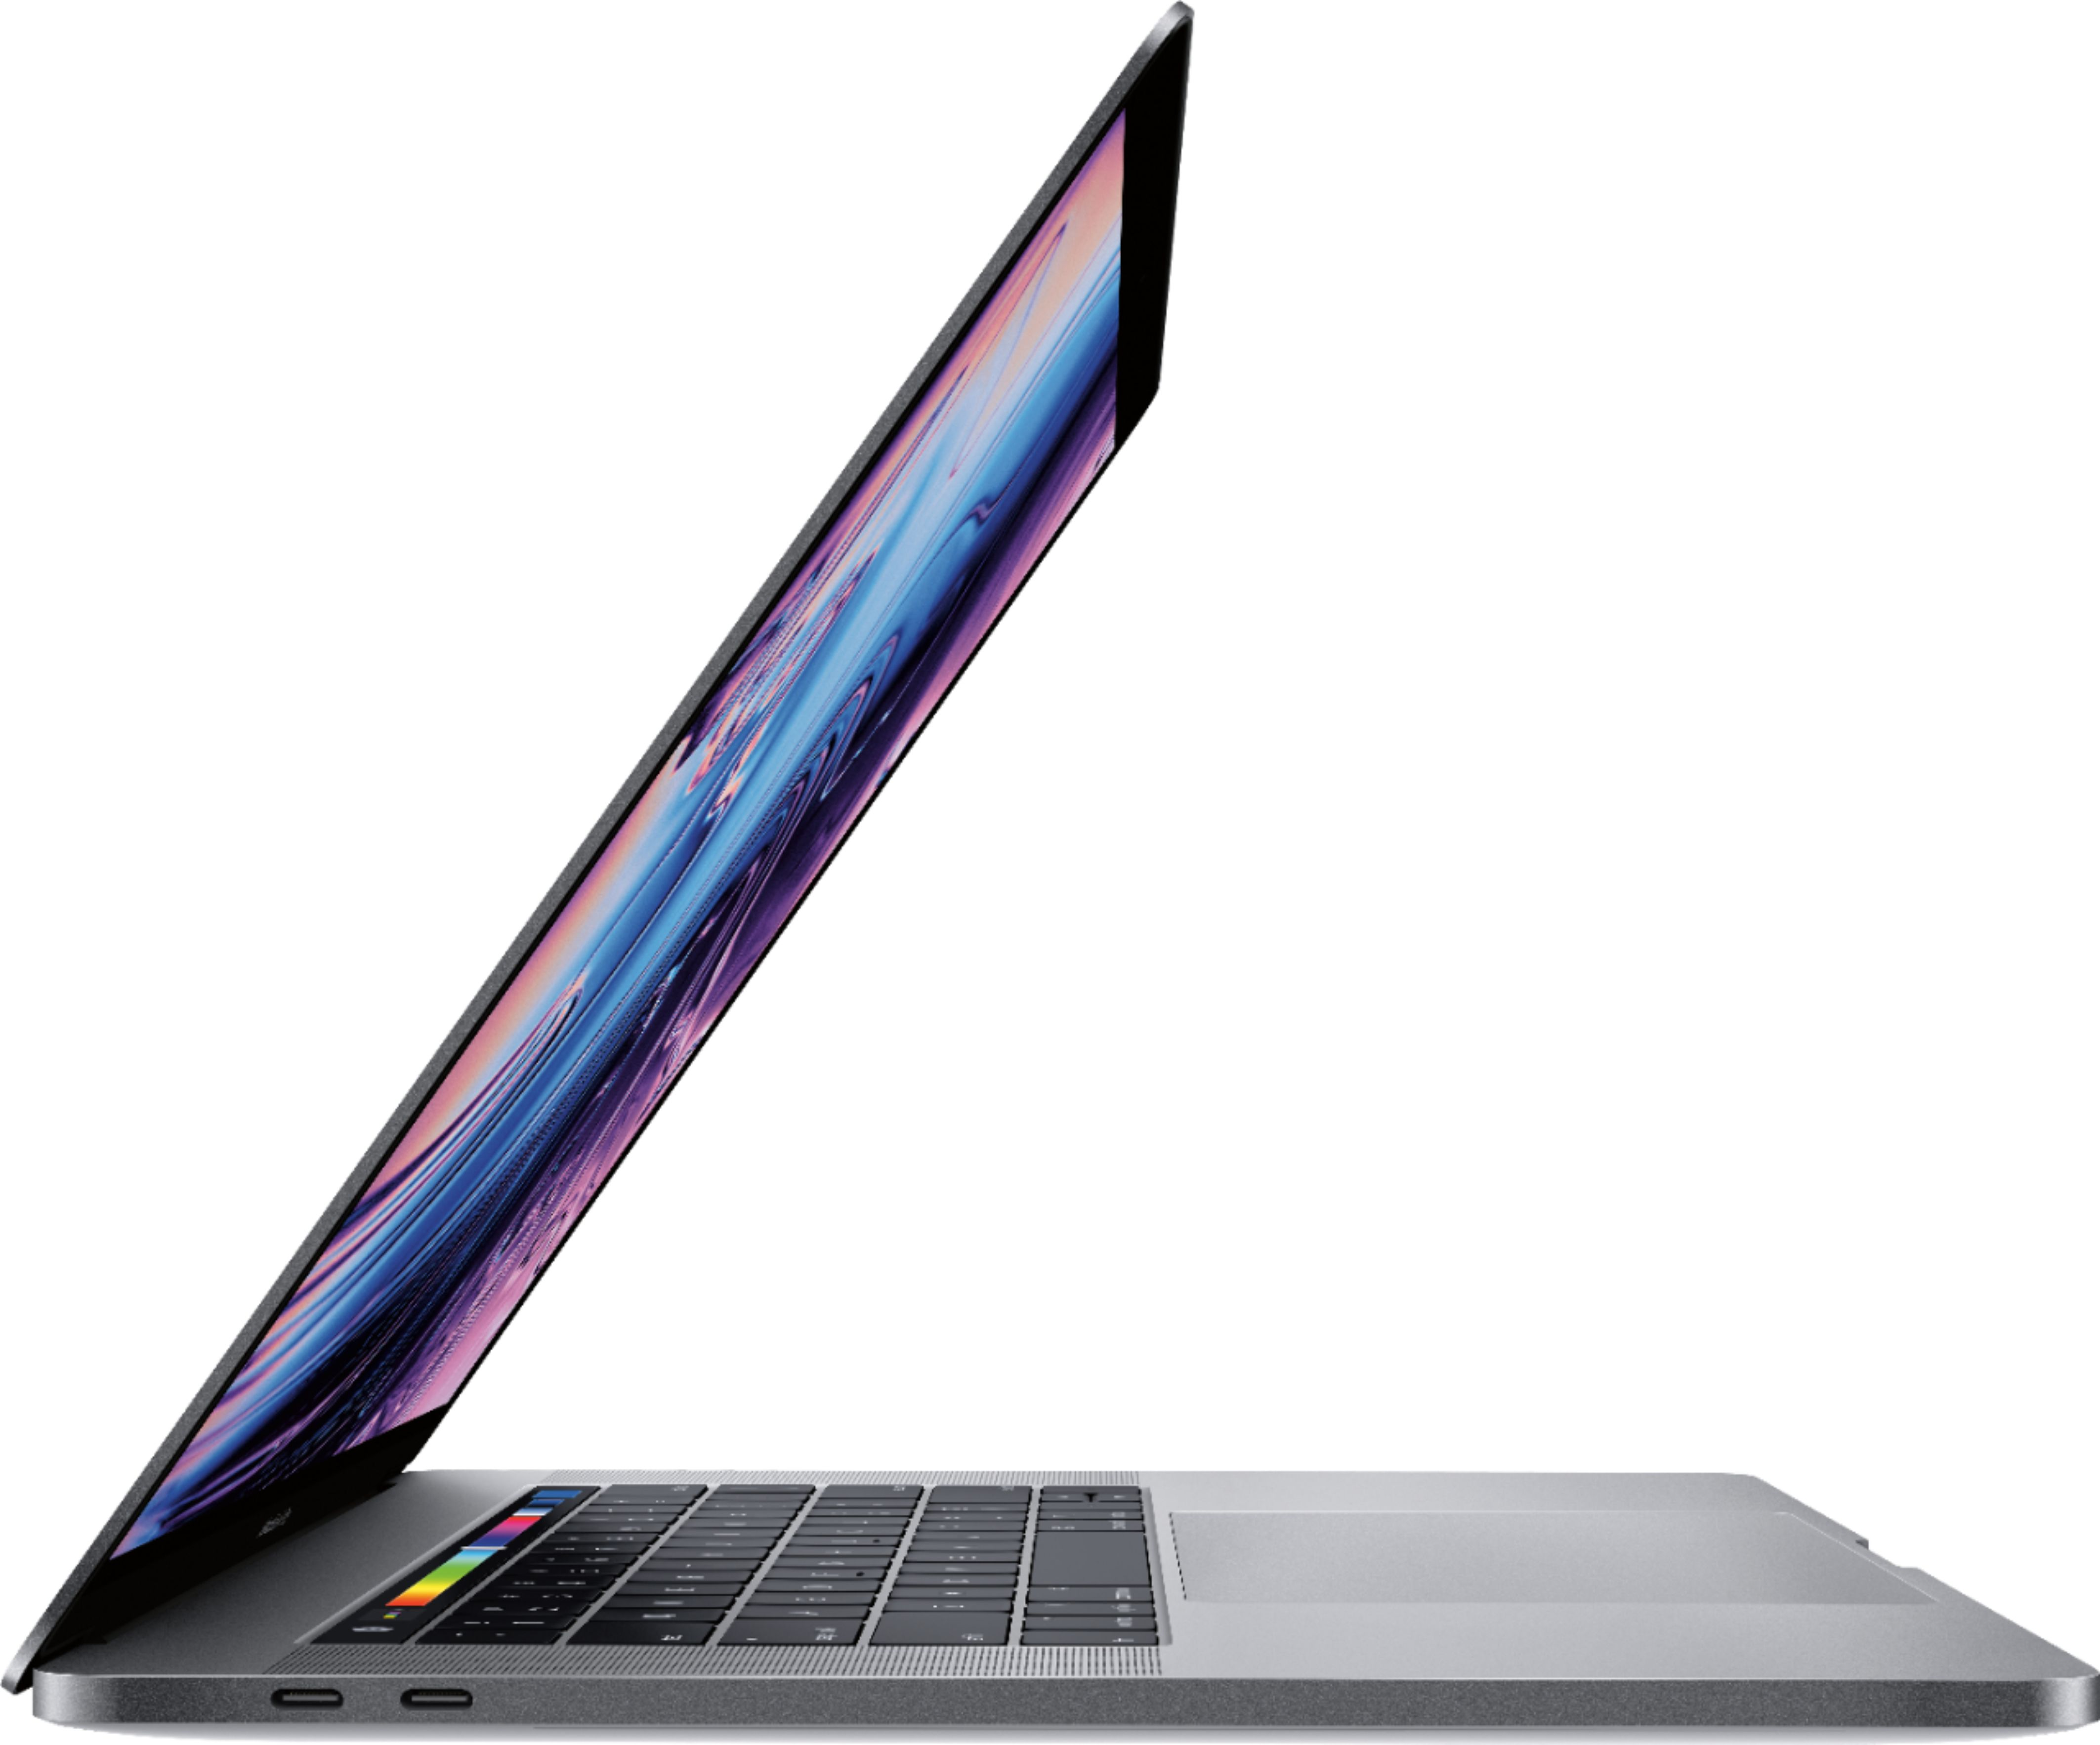 "Alt View Zoom 11. Apple - MacBook Pro 15.4"" Display with Touch Bar - Intel Core i9 - 32GB Memory - AMD Radeon Pro 560X - 1TB SSD - Space Gray."